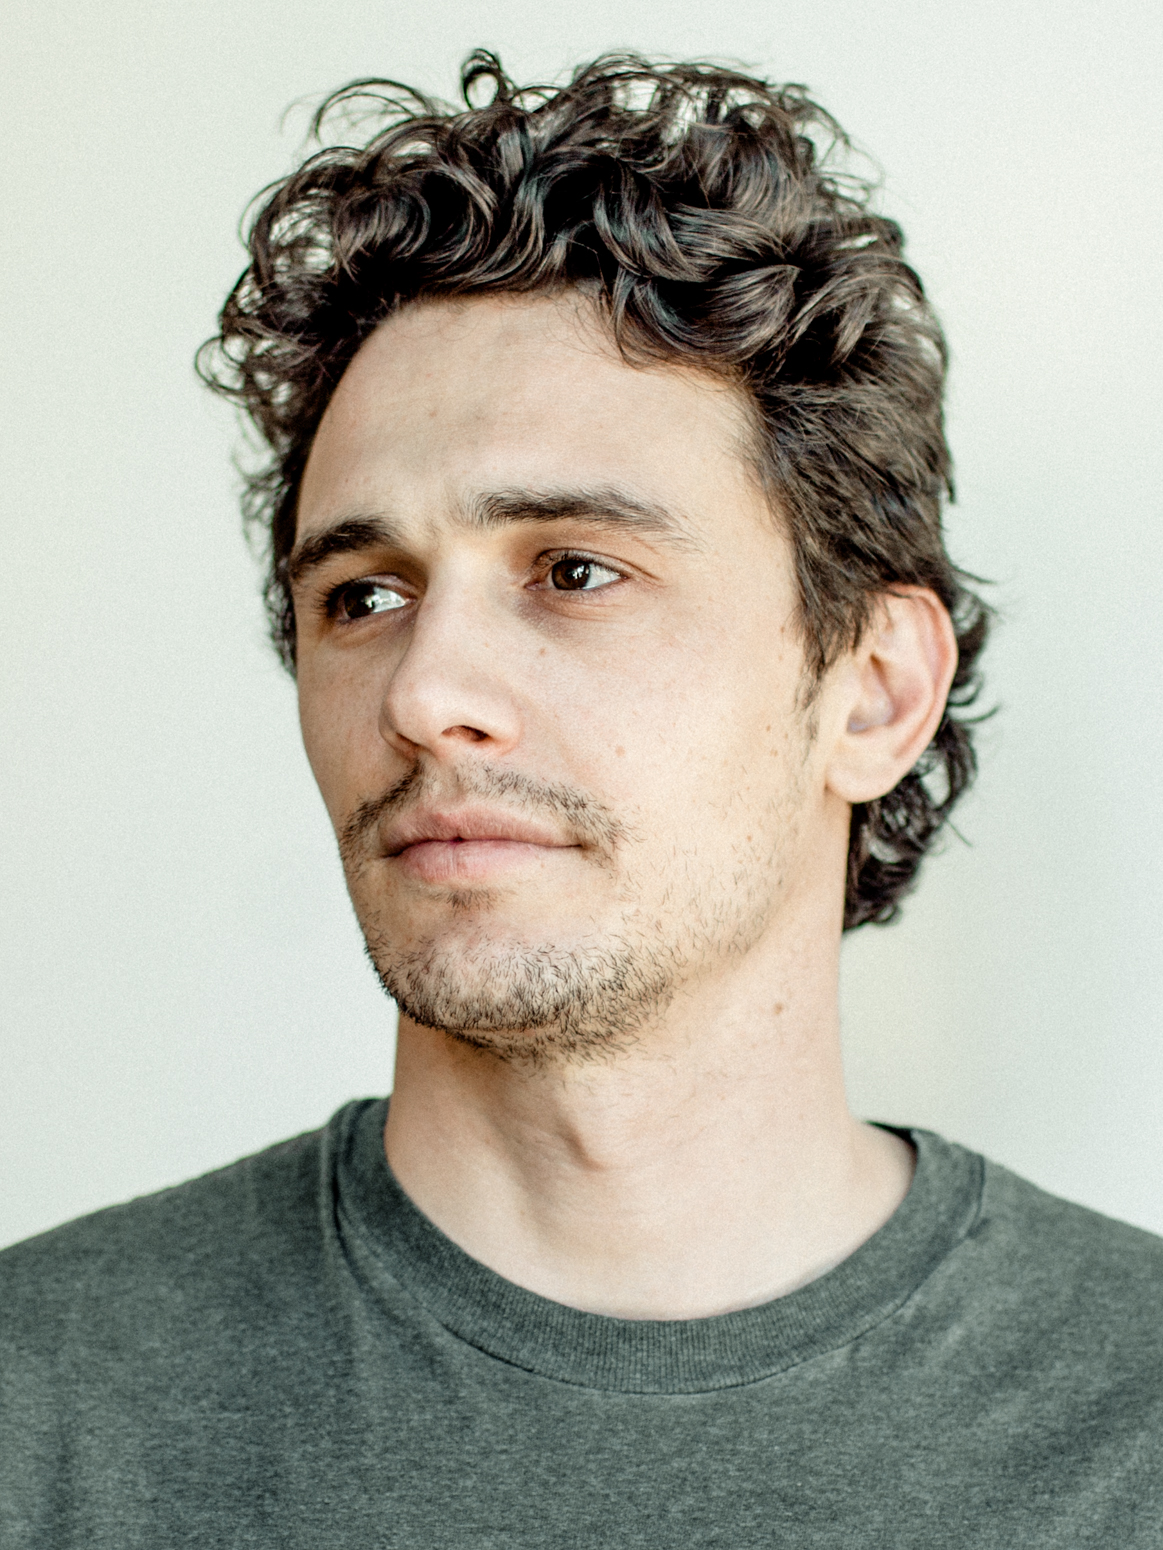 James Franco: Actor